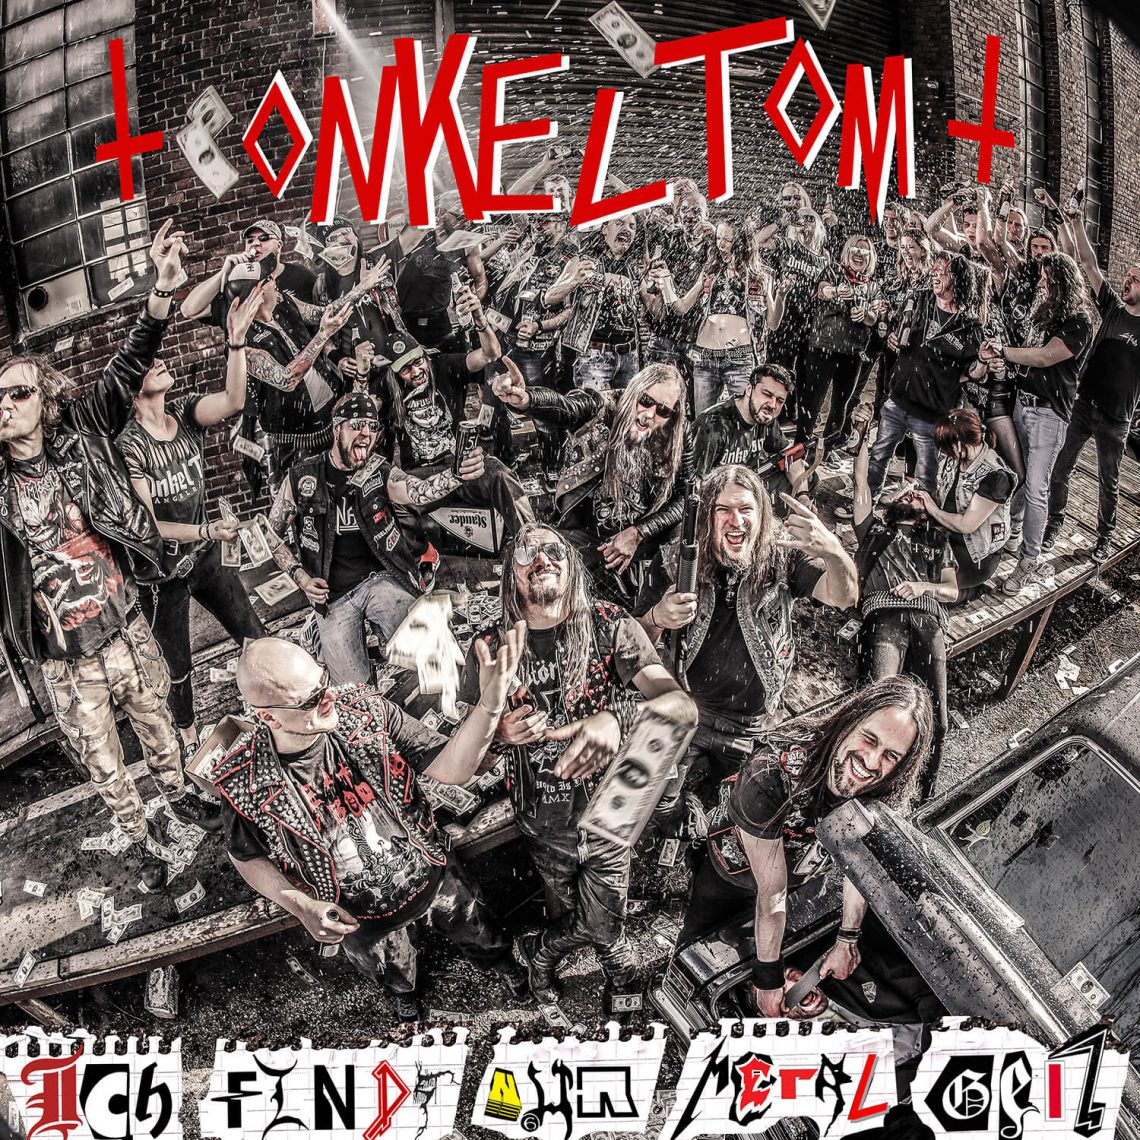 ONKEL TOM release new single and video!